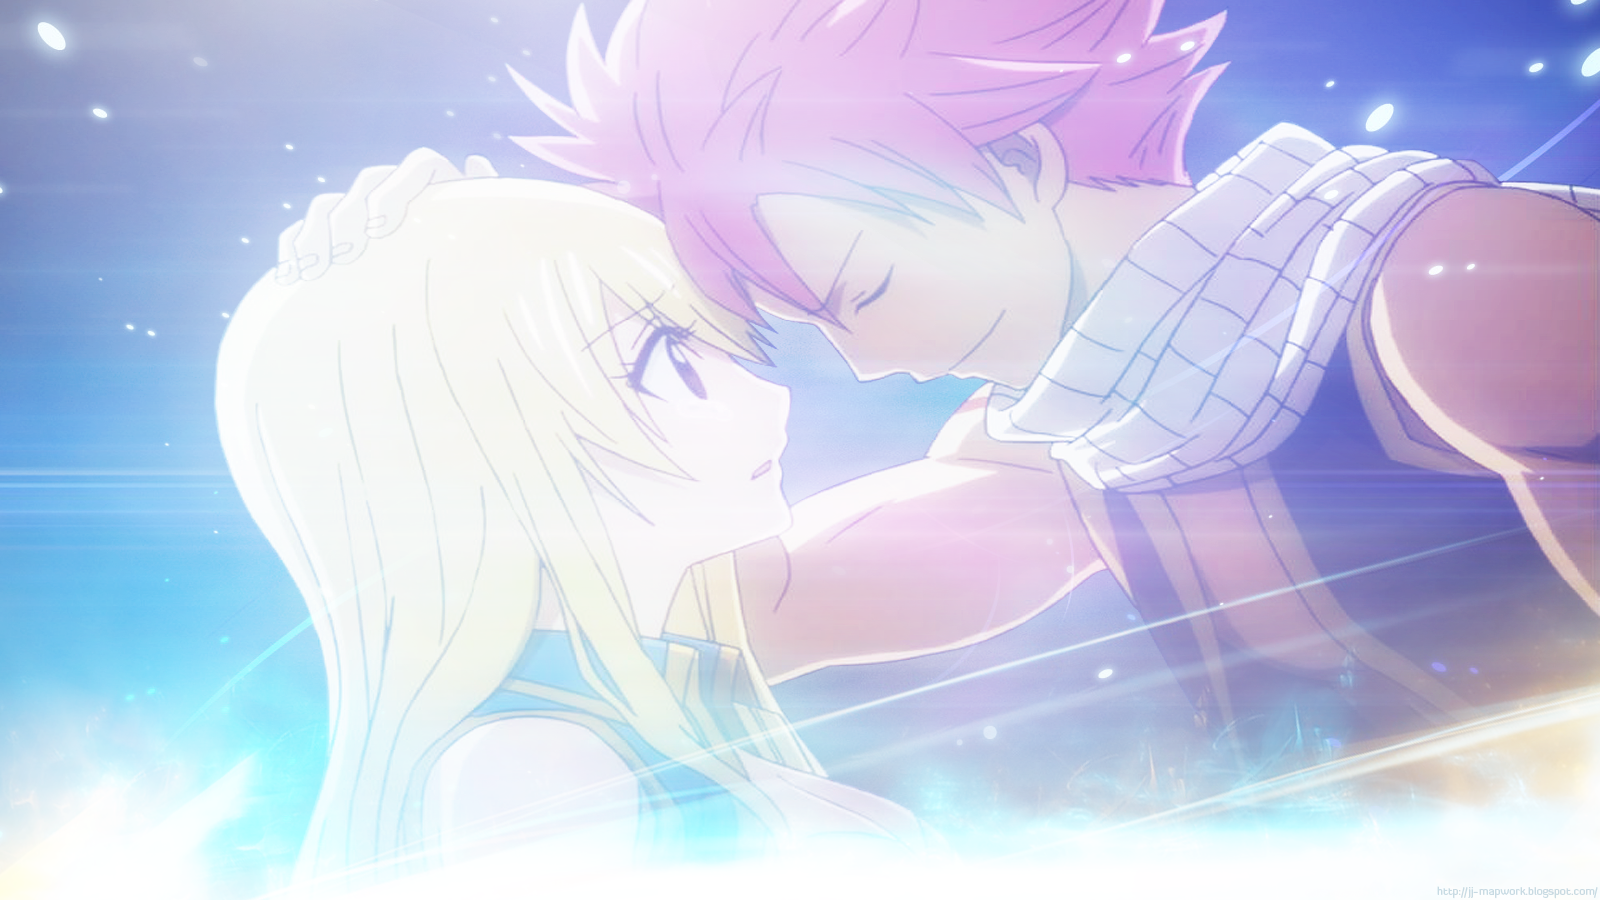 Fairy Tail 2014 Wallpaper by JJ MapWork on deviantART 1600x900